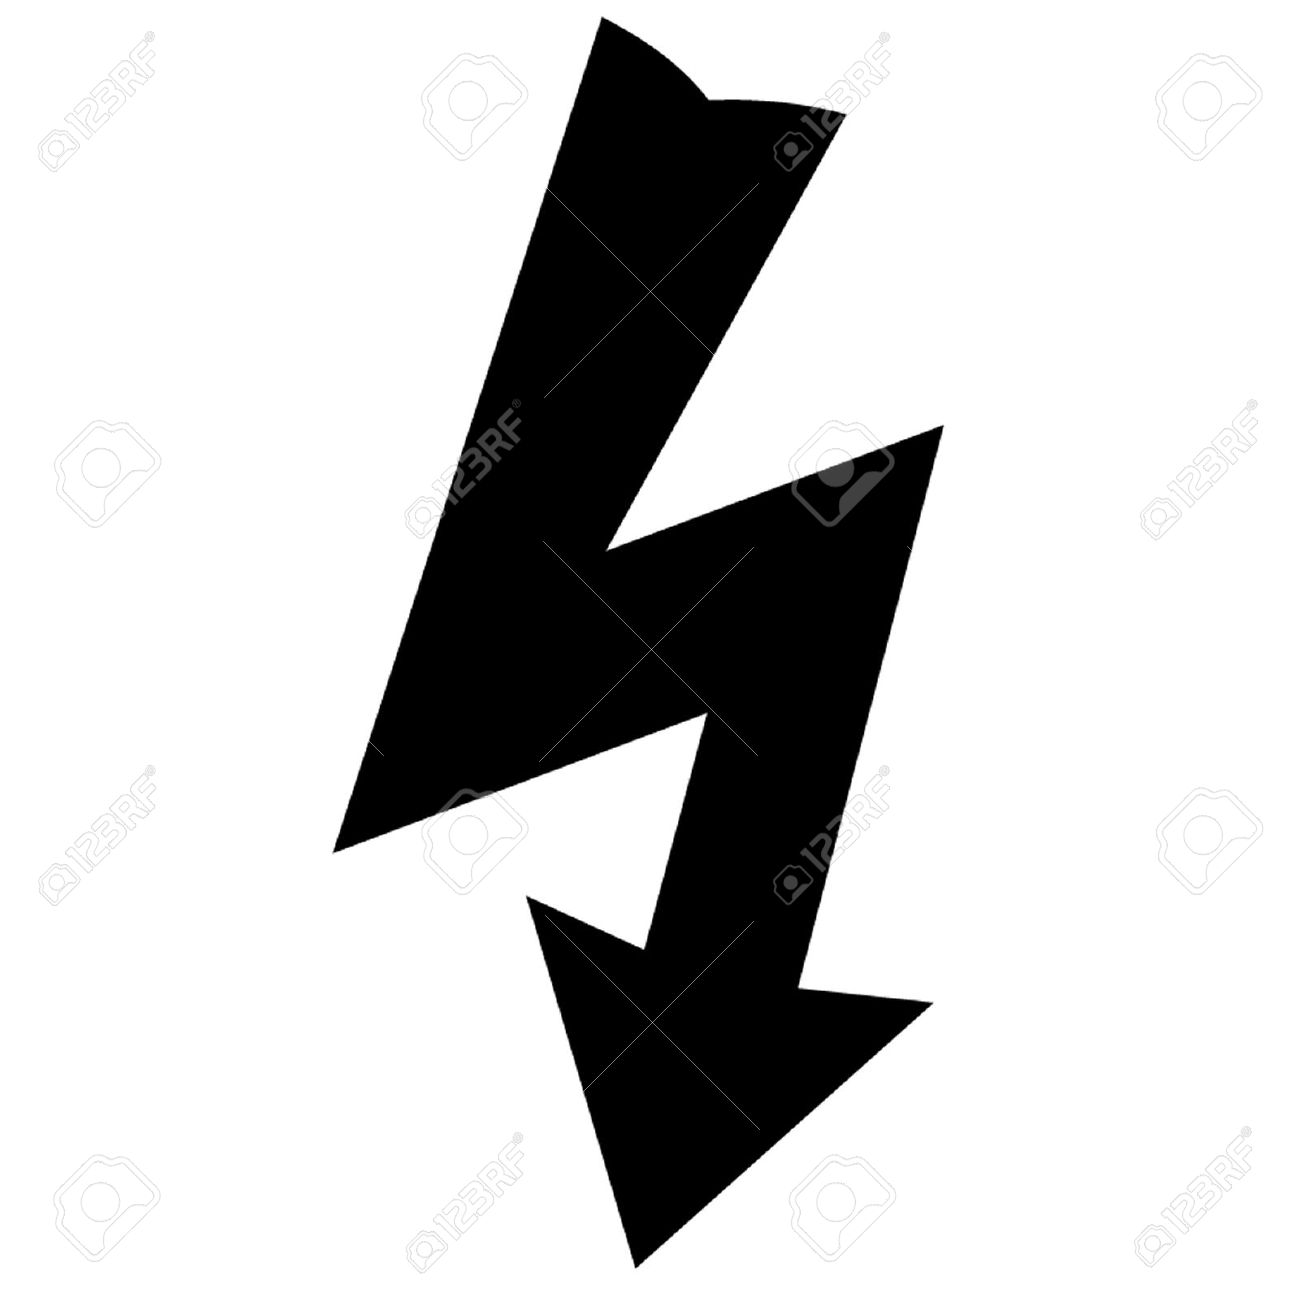 Electricity Symbol Royalty Free Cliparts, Vectors, And Stock ...